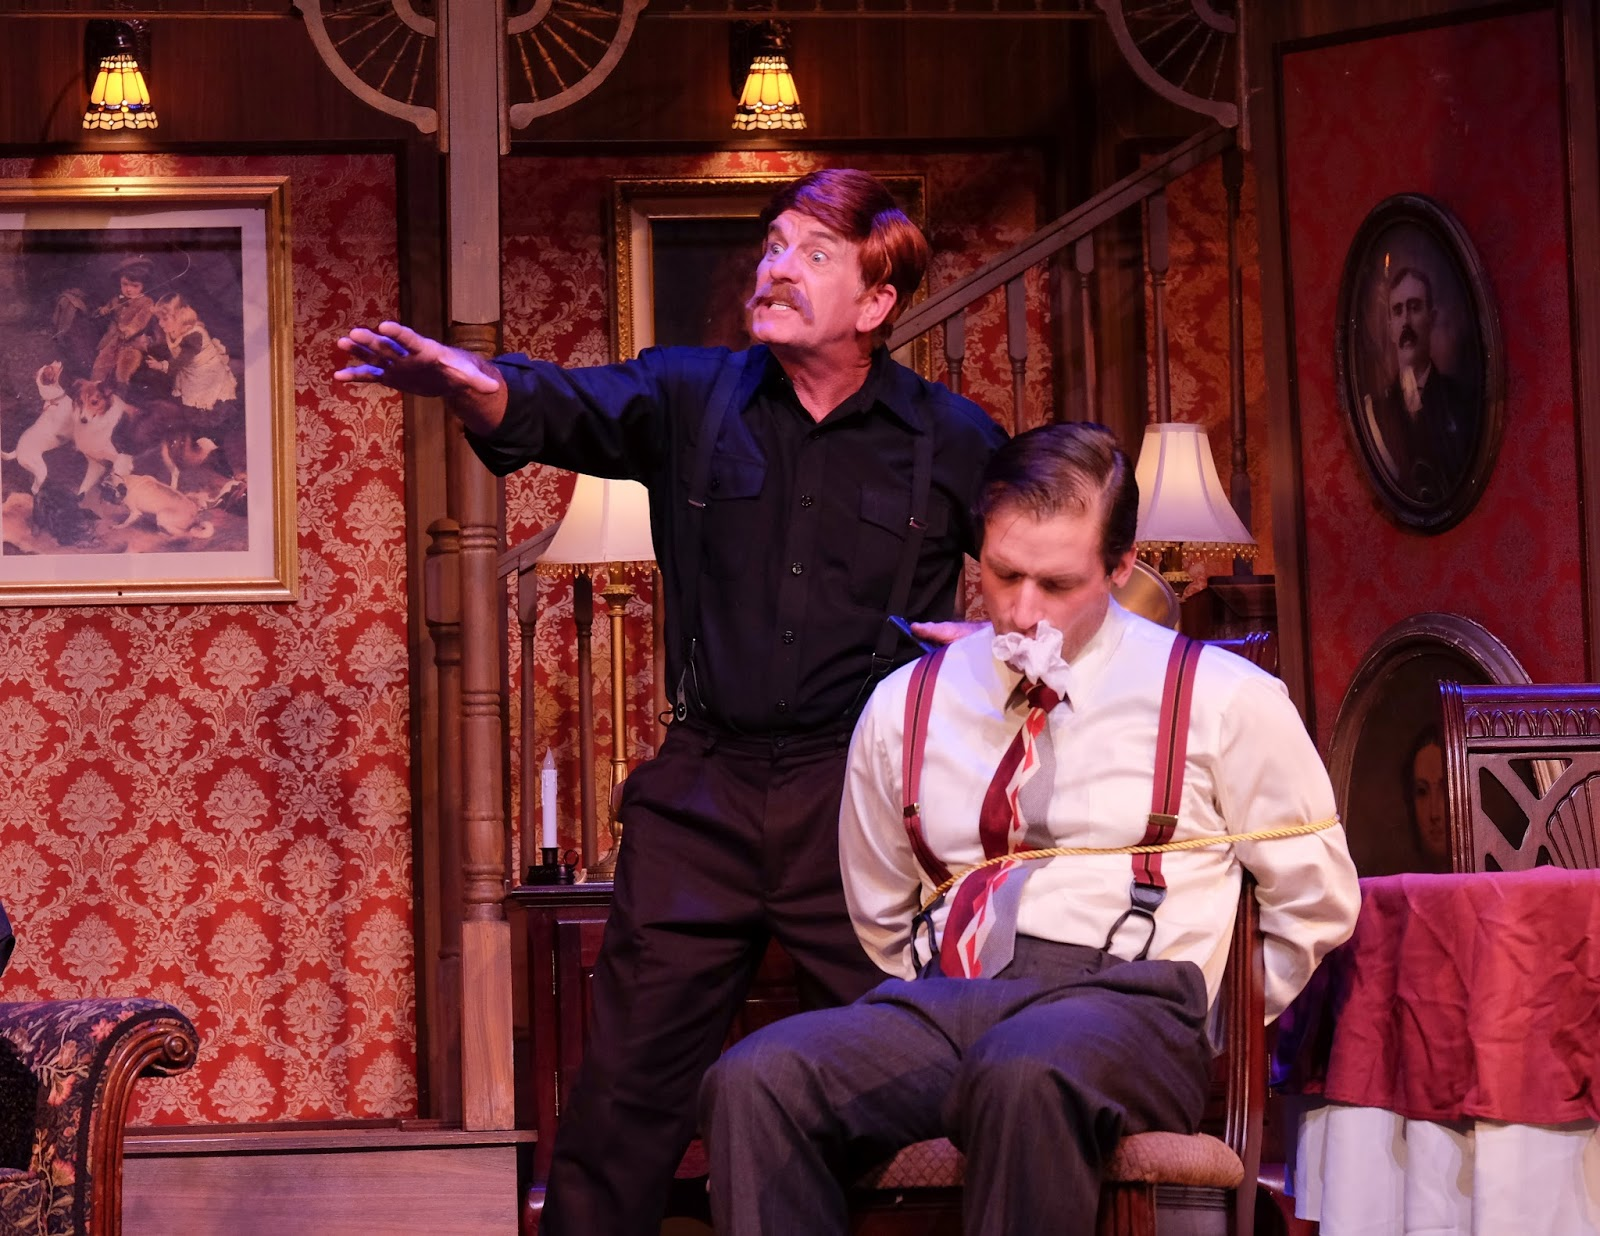 review of arsenic and old lace The players centre for the performing arts is presenting a fine production of joseph kesselring's classic comedy arsenic and old lace the play is probably one of the funniest ever written and it has aged well.